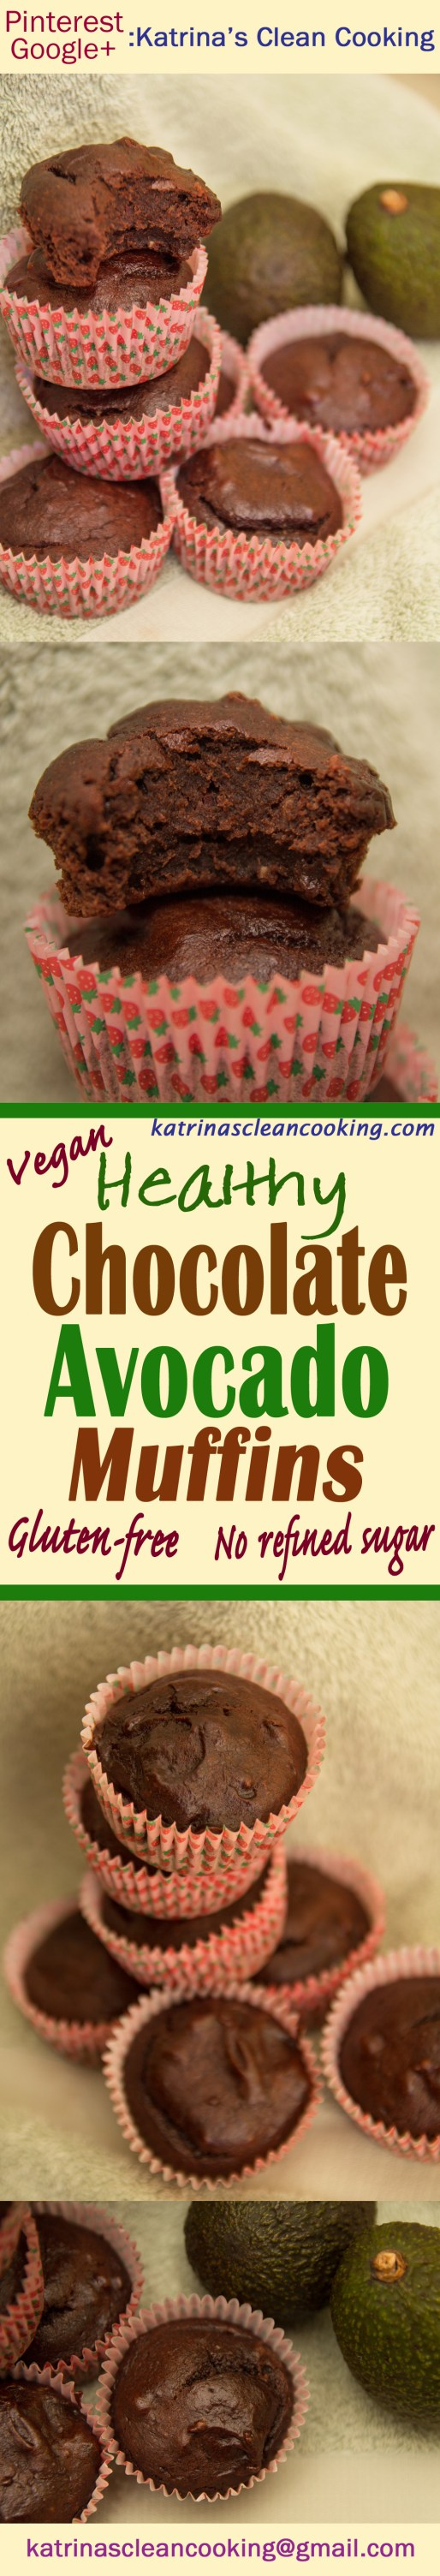 Healthy Chocolate Avocado Muffins #healthy #wholewheat #glutenfree #refinedsugarfree #avocado